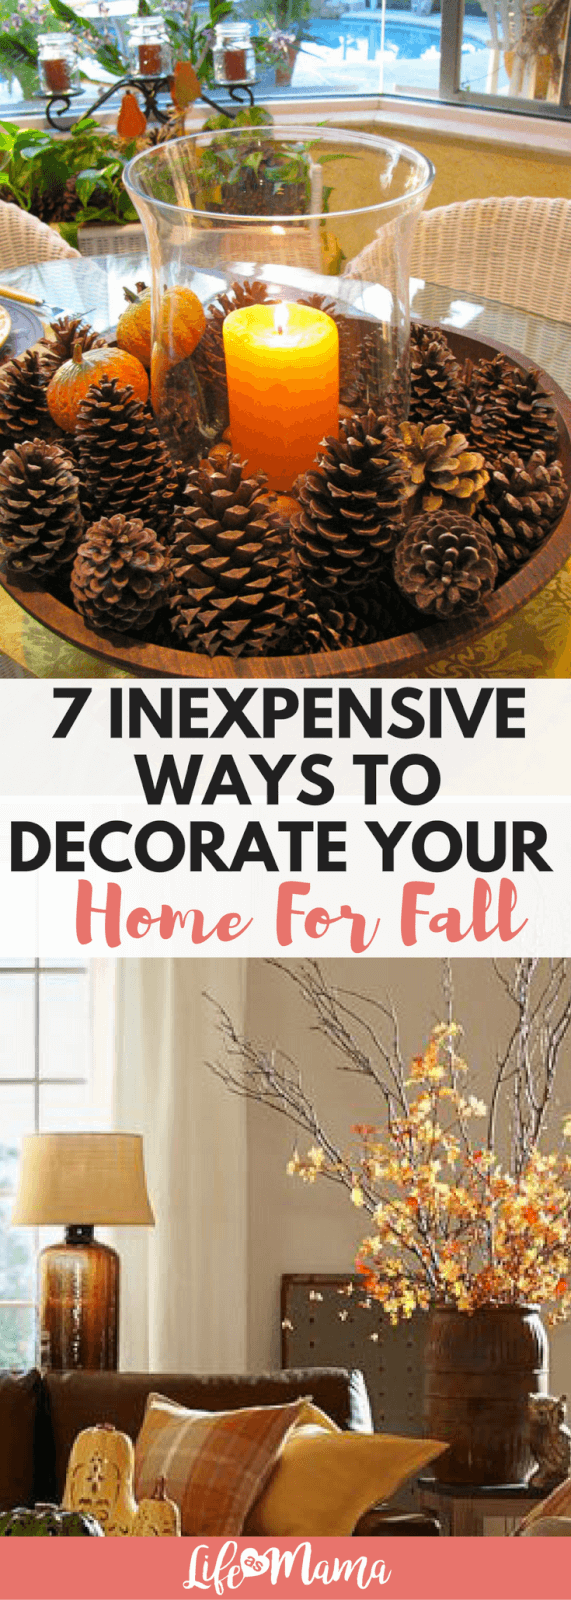 Inexpensive ways to decorate your home 28 images Cheap easy ways to decorate your home